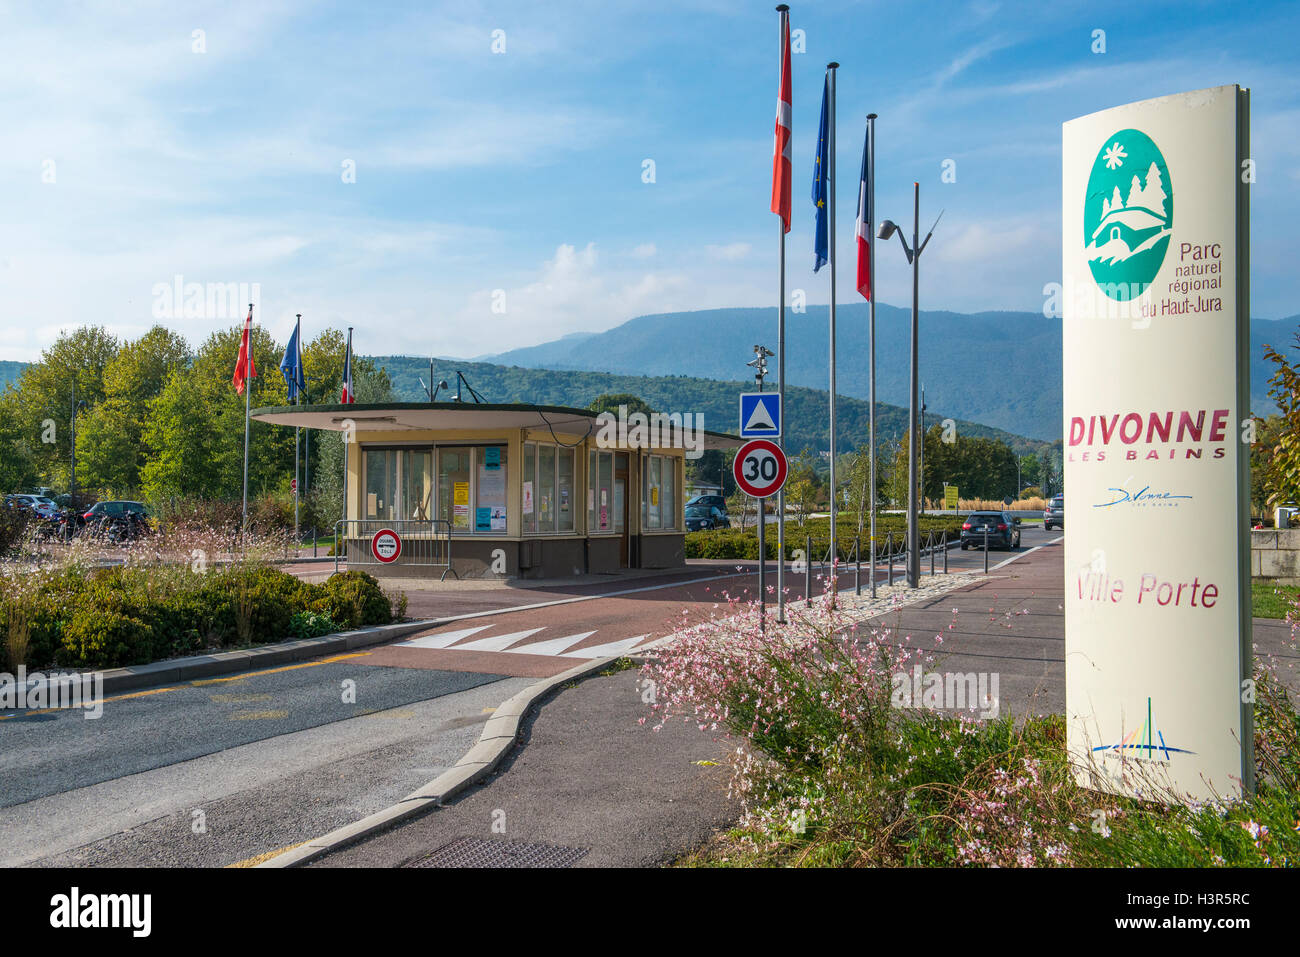 Border crossing point from Switzerland into Divonne les bains,  Ain department in eastern France - Stock Image